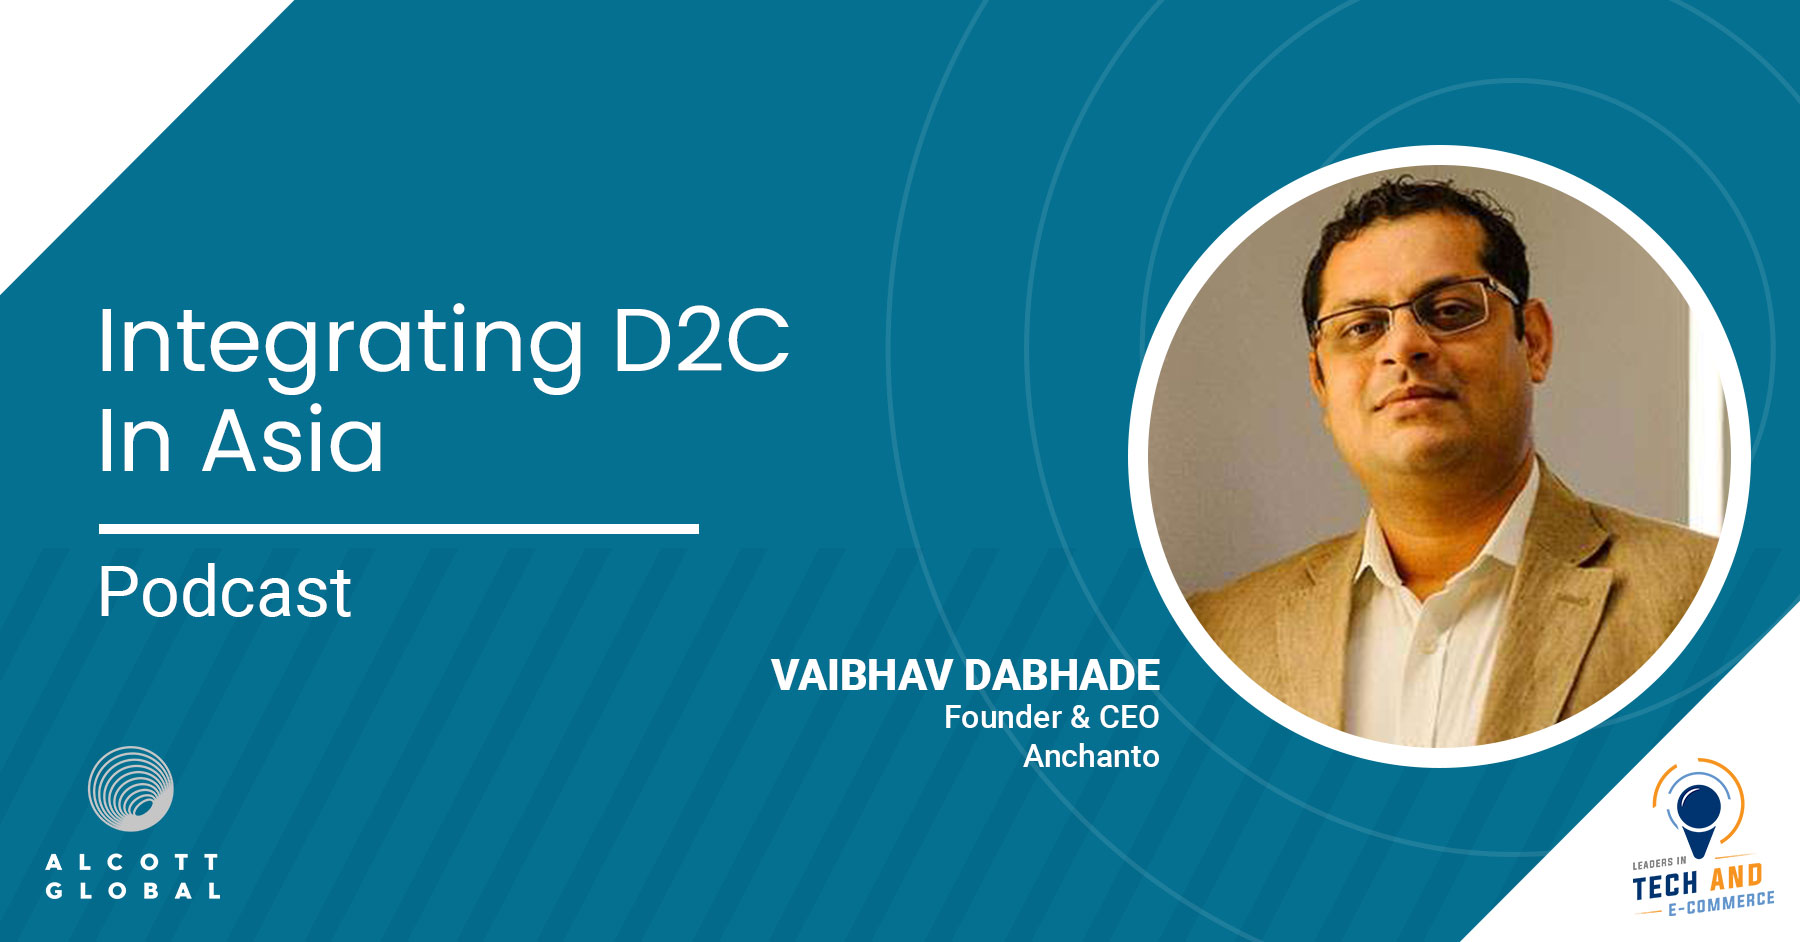 Integrating D2C in Asia with Vaibhav Dabhade Founder & CEO of Anchanto Featured Image